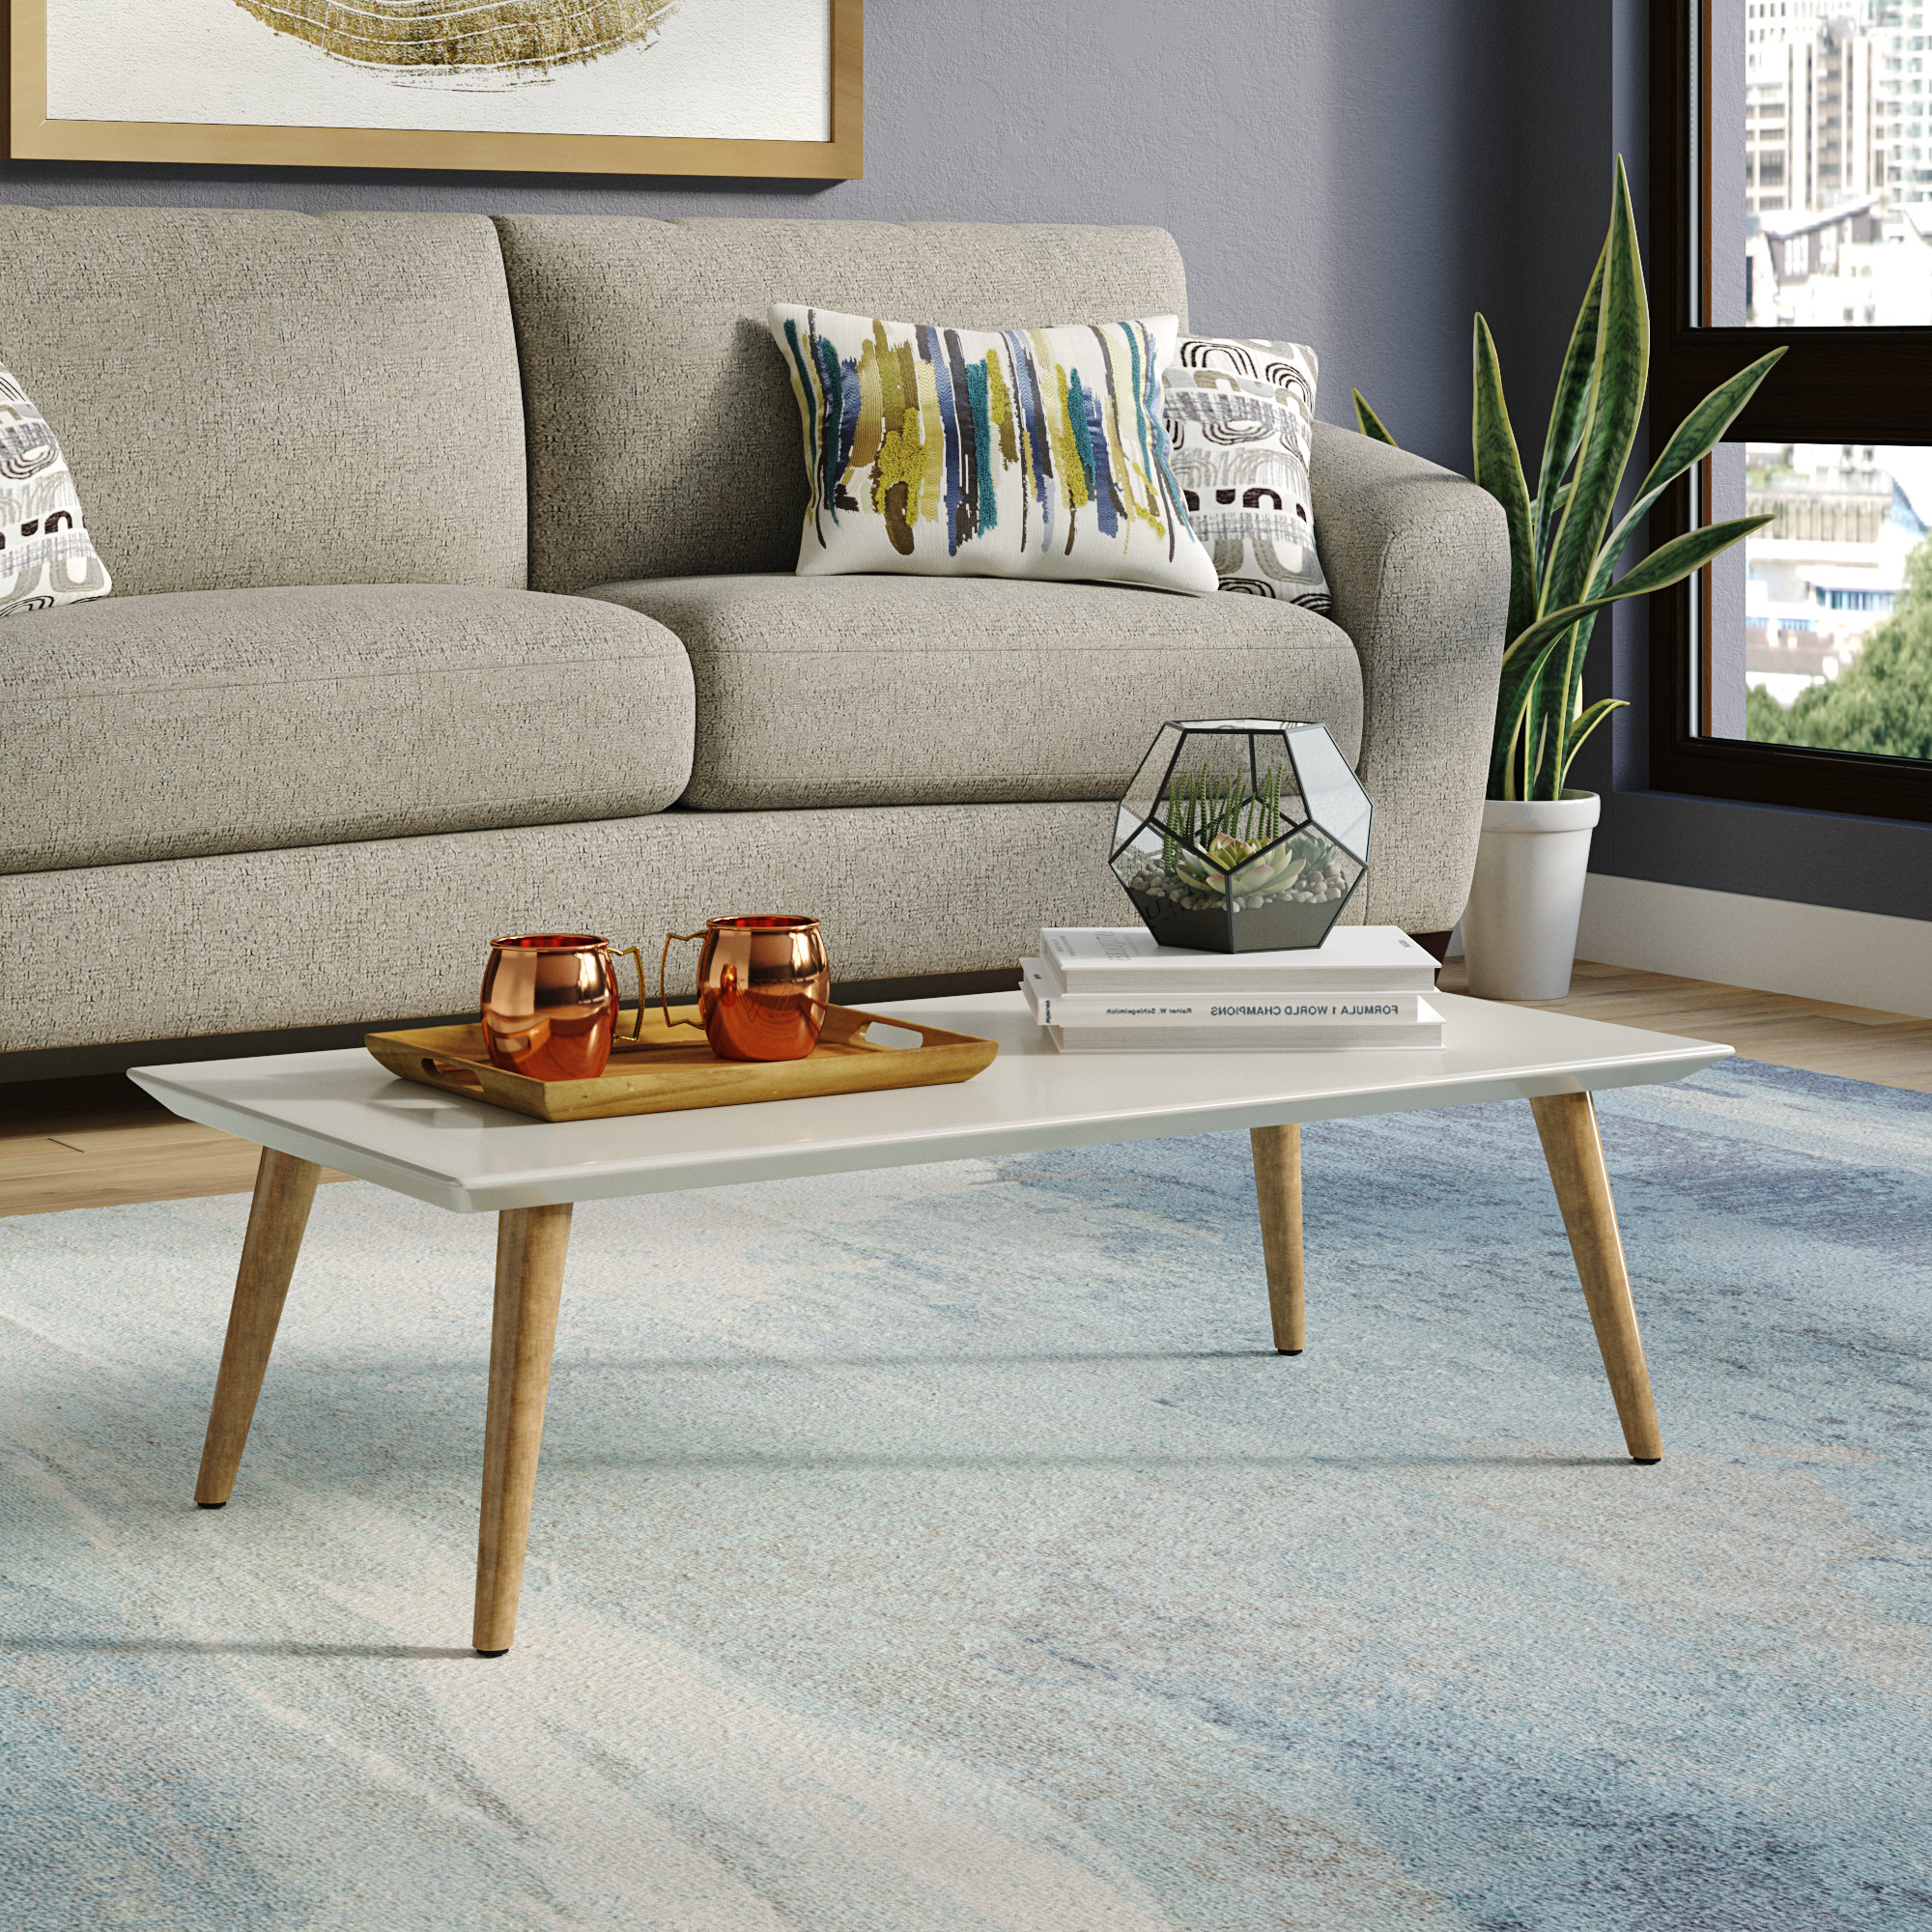 Favorite Rectangular Coffee Tables With Brass Legs Regarding George Oliver Lemington Rectangle Coffee Table With Splayed Legs (View 16 of 20)